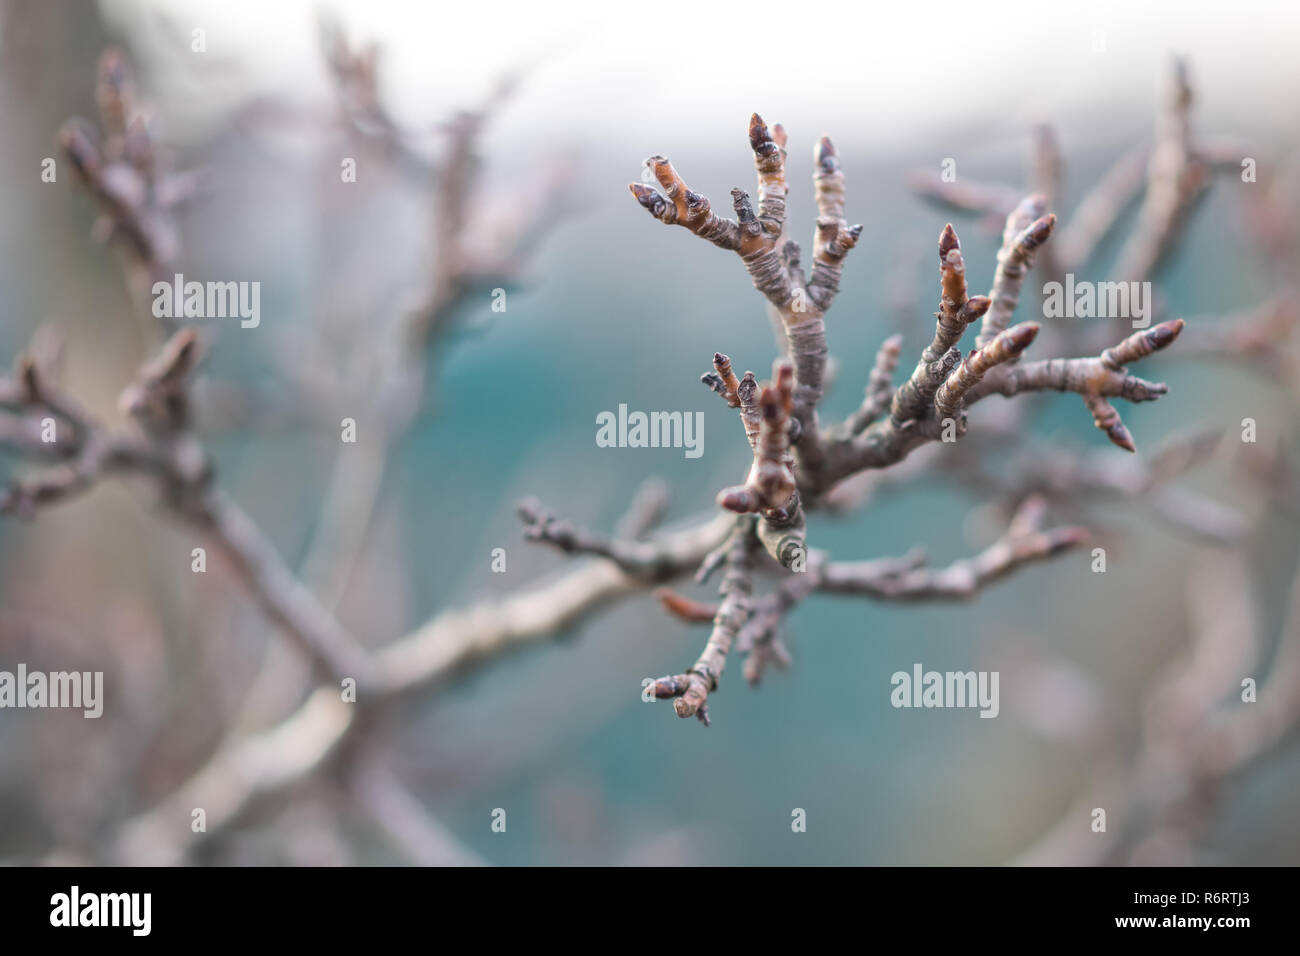 branches of a dry pear tree in a winter cloudy day. Stock Photo